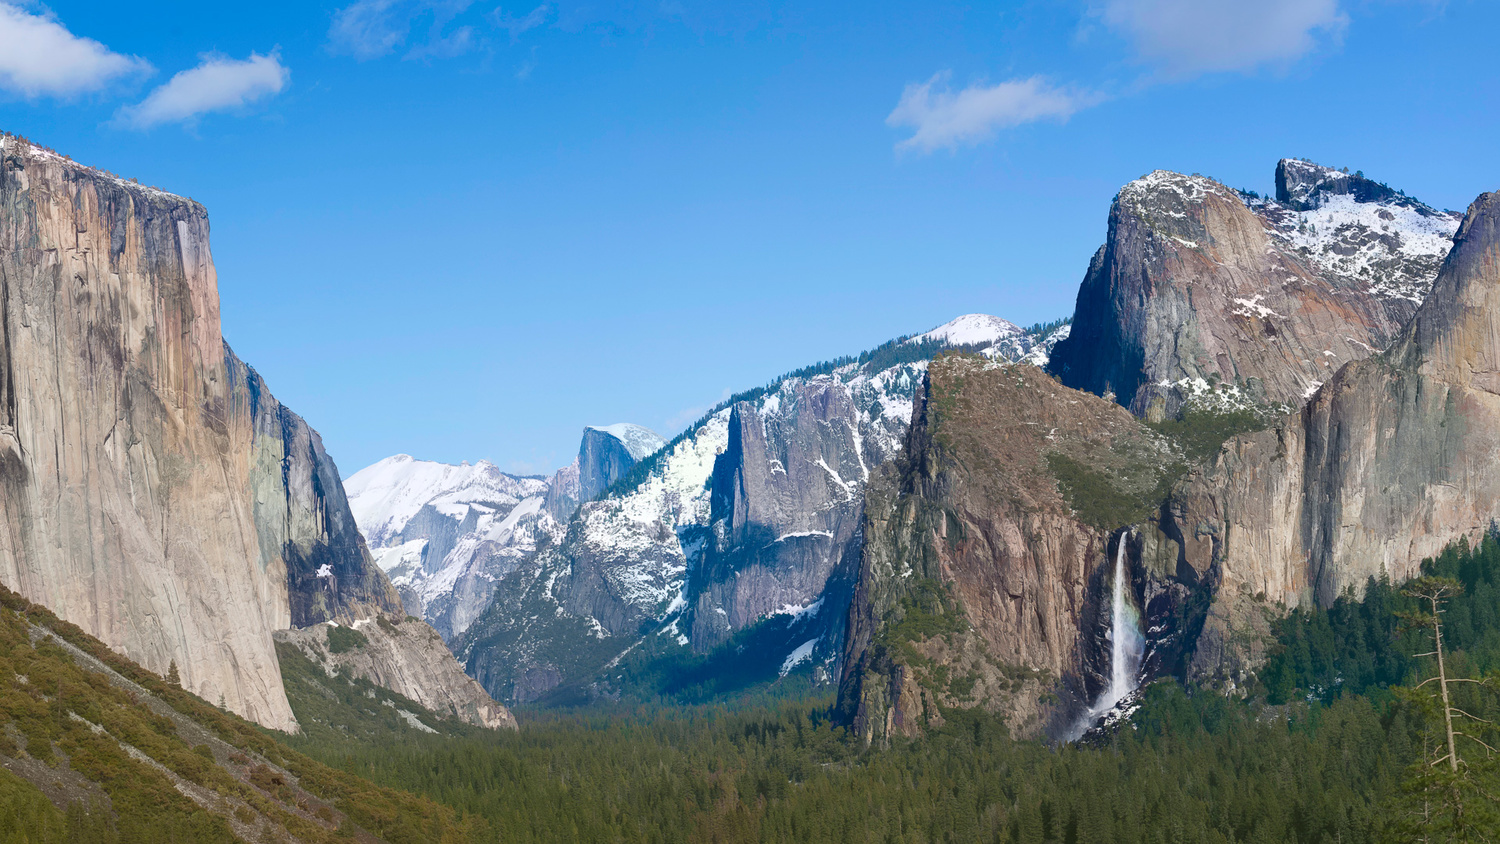 Tunnel View. Revisiting an Icon. by Gregory Scott